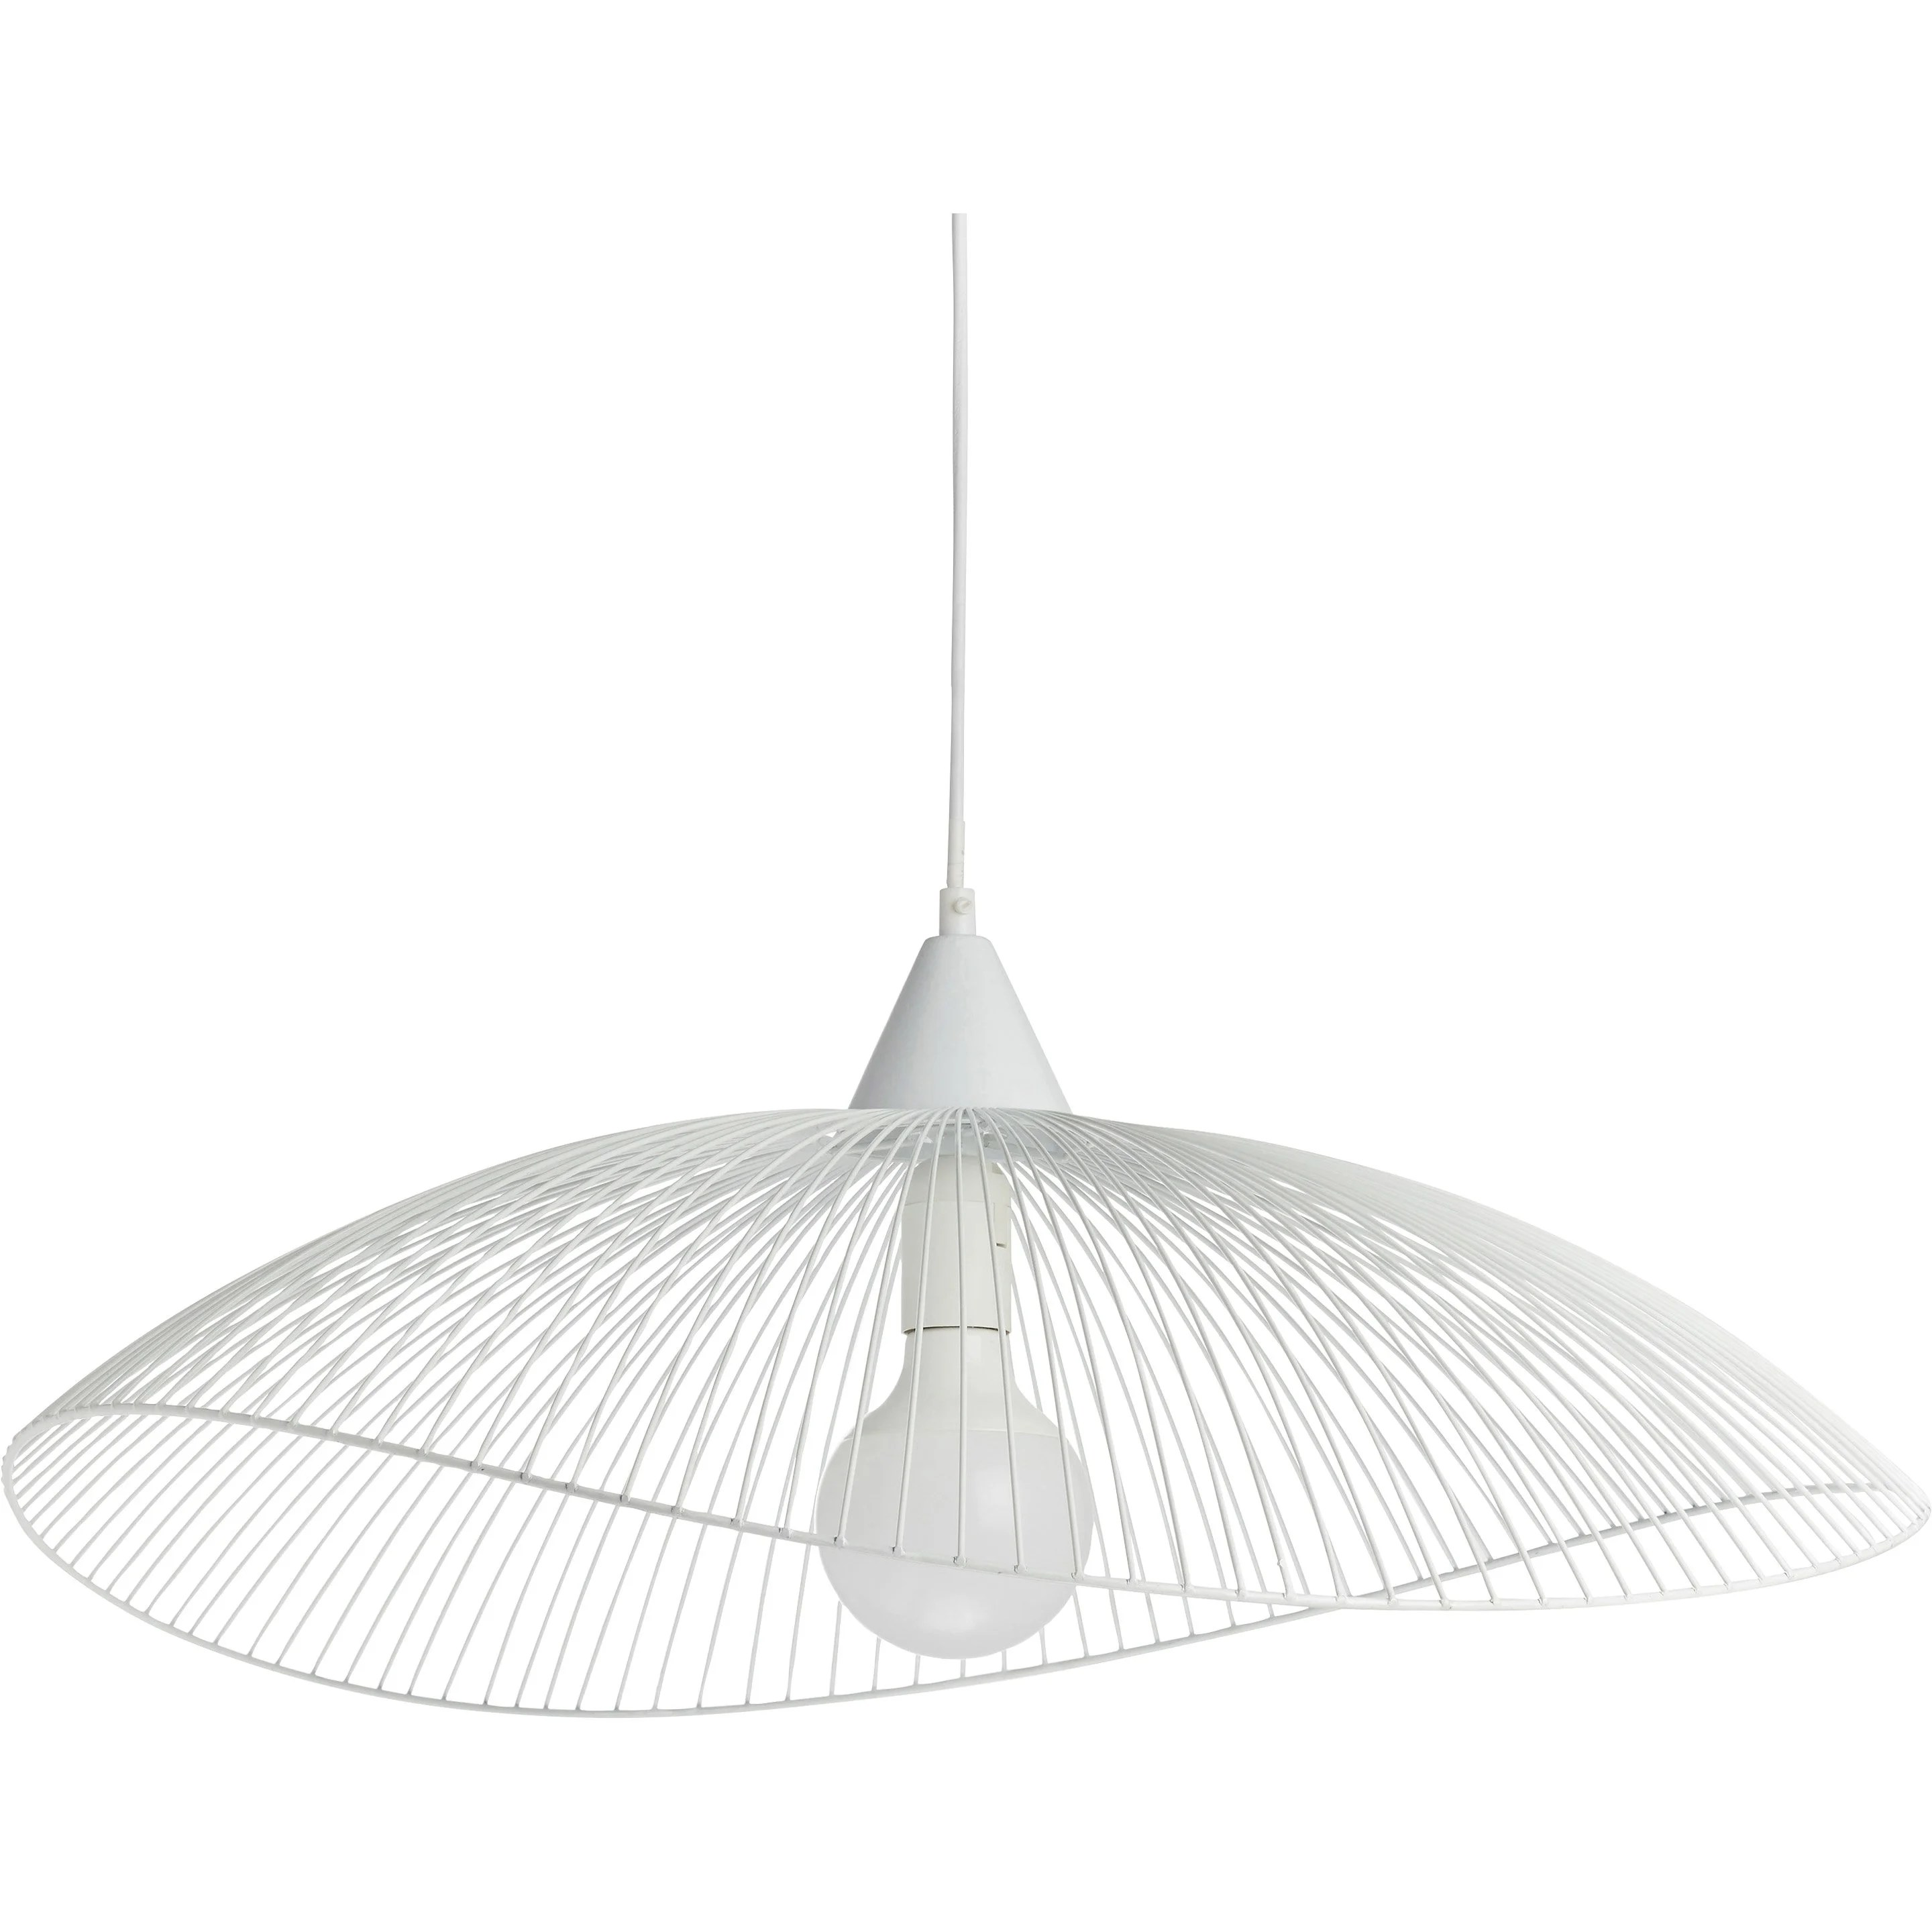 Applique Liseuse Leroy Merlin Suspension, E27 Scandinave Kasteli Métal Blanc 1 X 40w